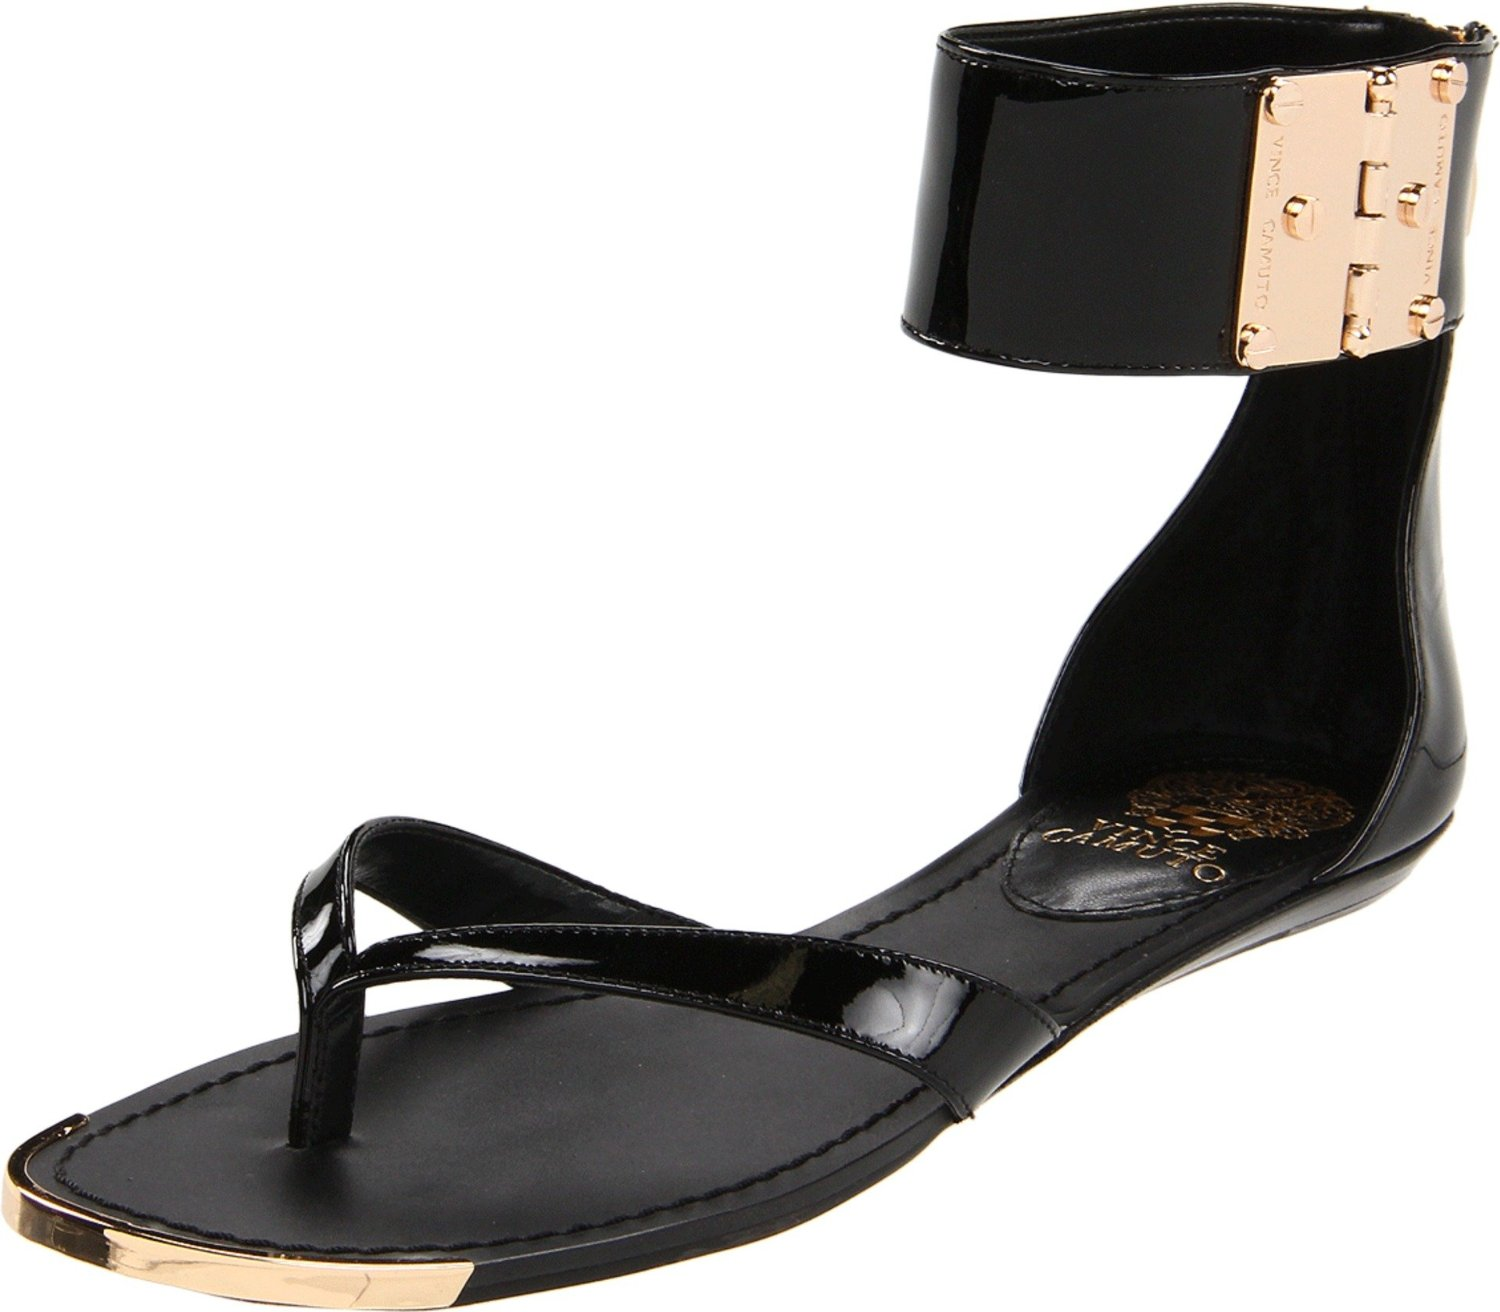 Vince Camuto Kastern Flat Sandals In Black Lyst